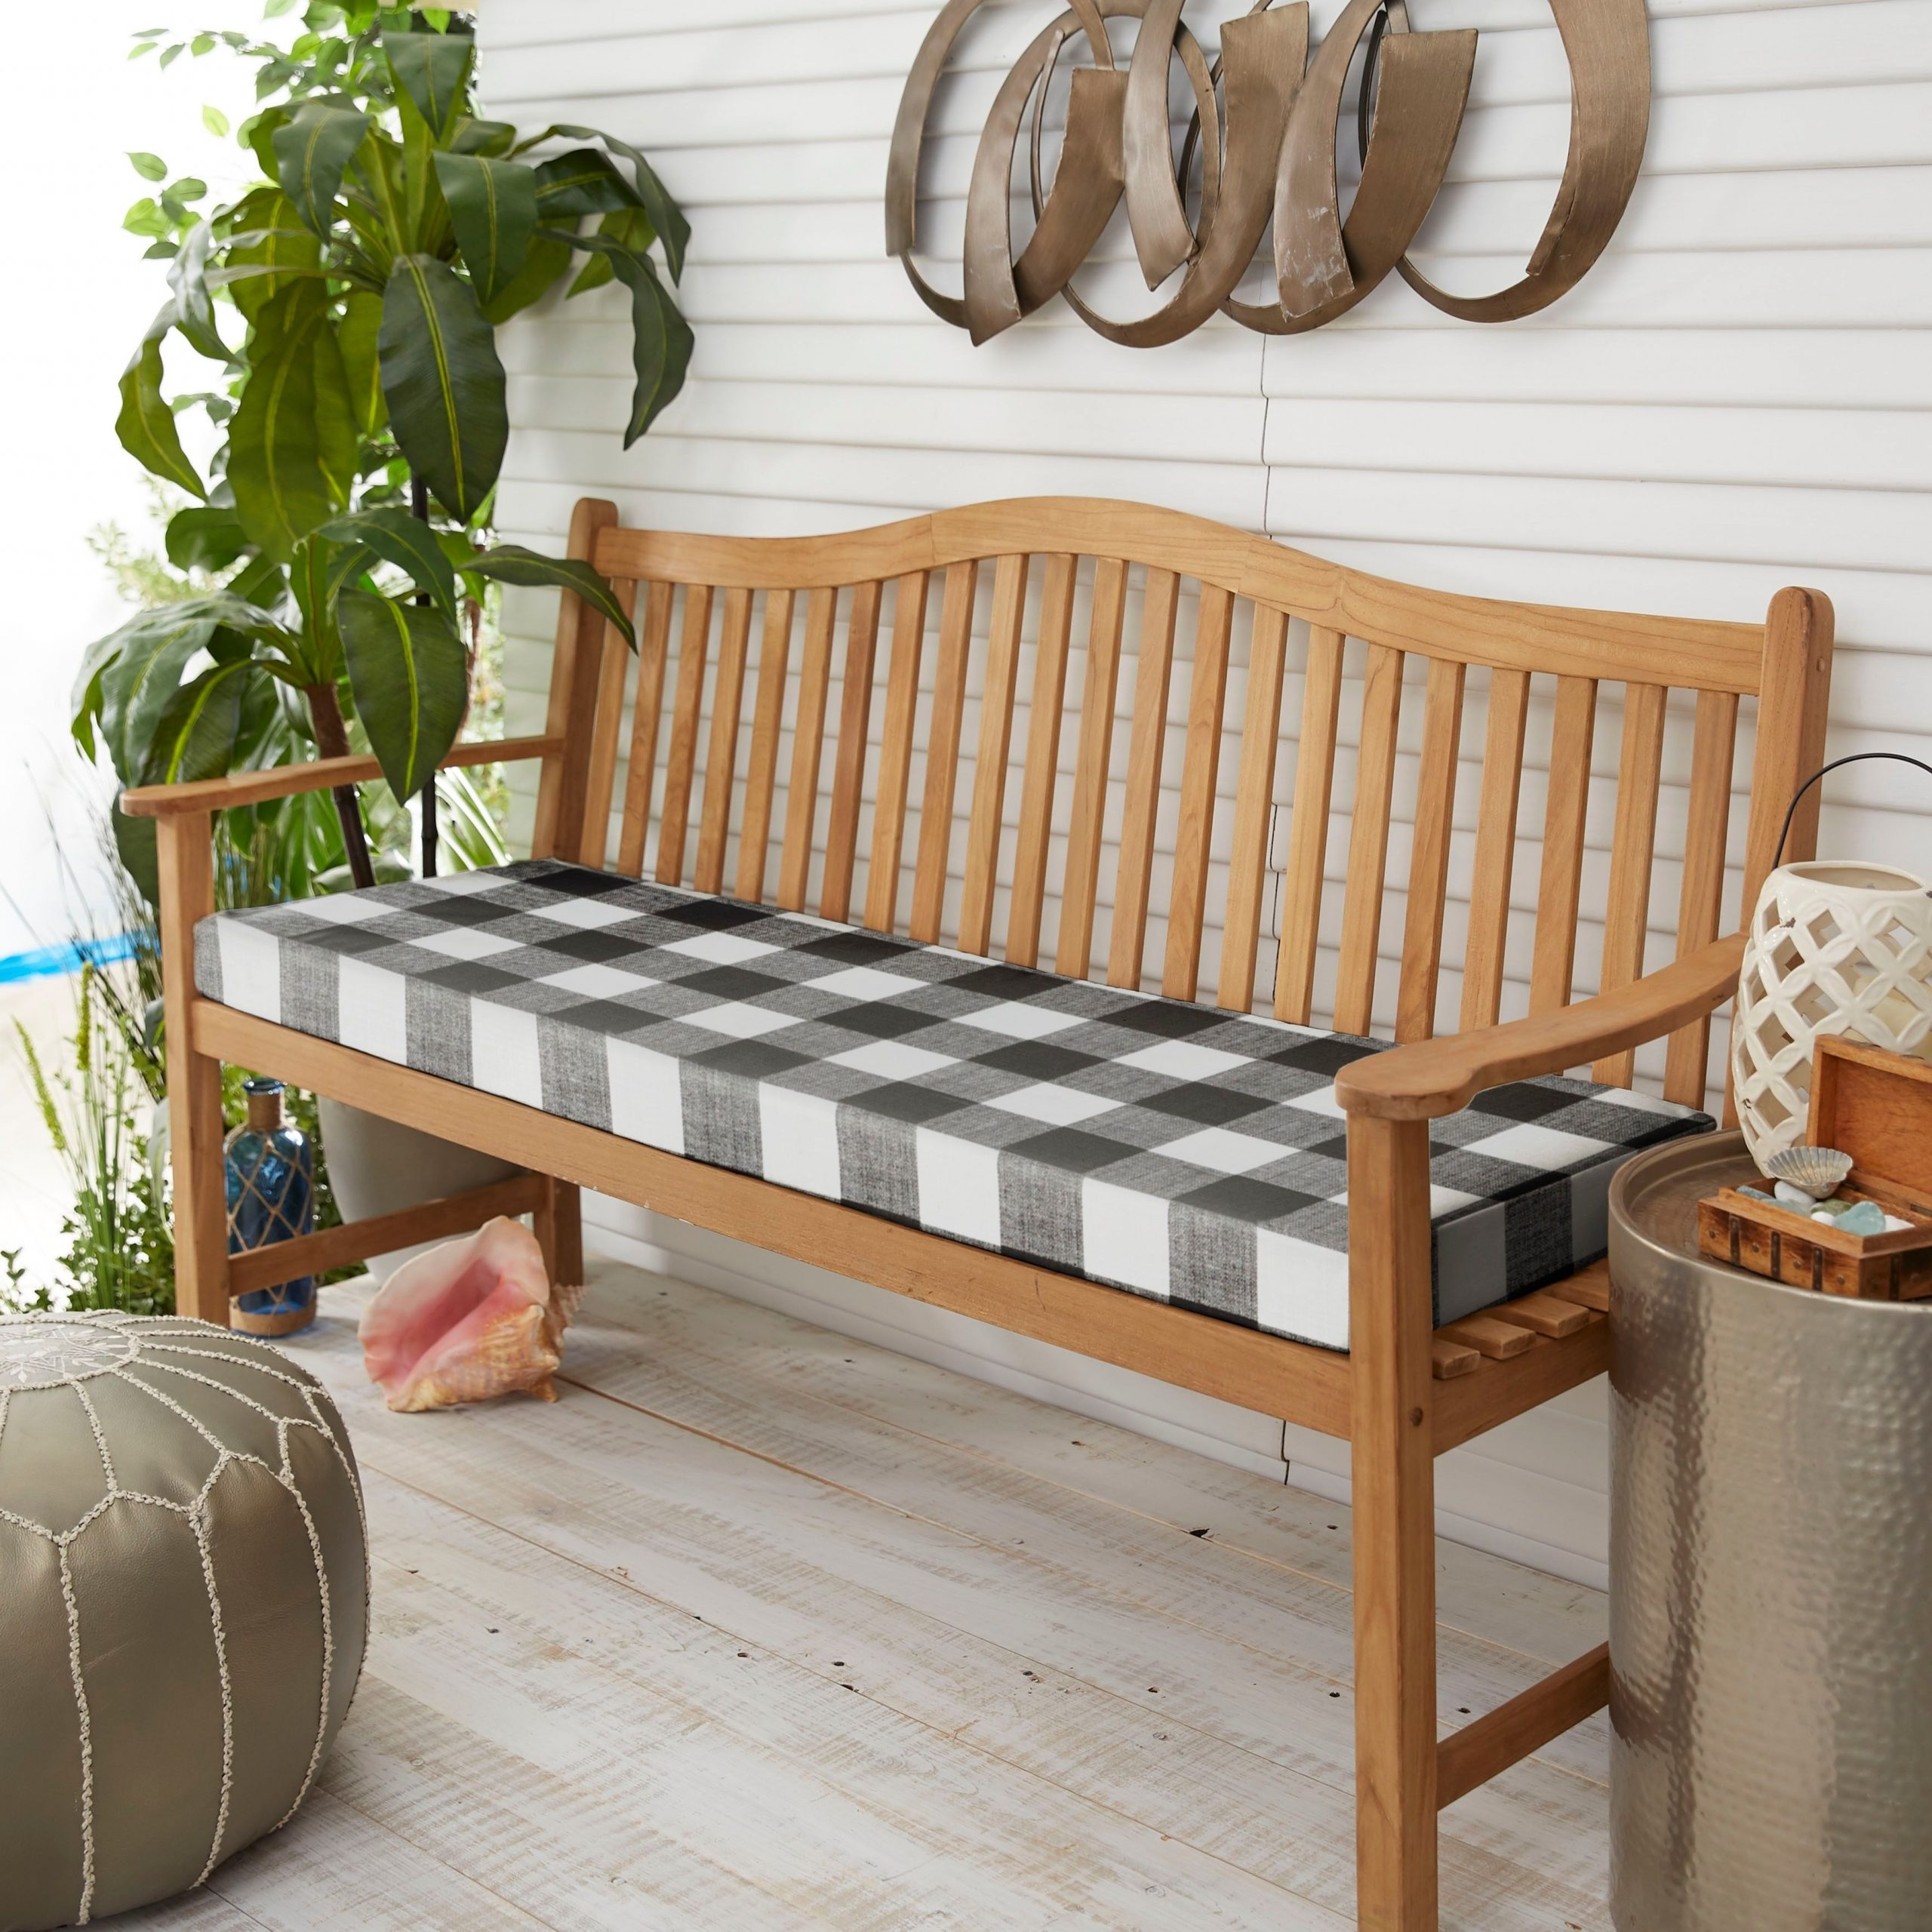 Overstock: Online Shopping – Bedding, Furniture Within Most Up To Date Harpersfield Wooden Garden Benches (View 23 of 30)